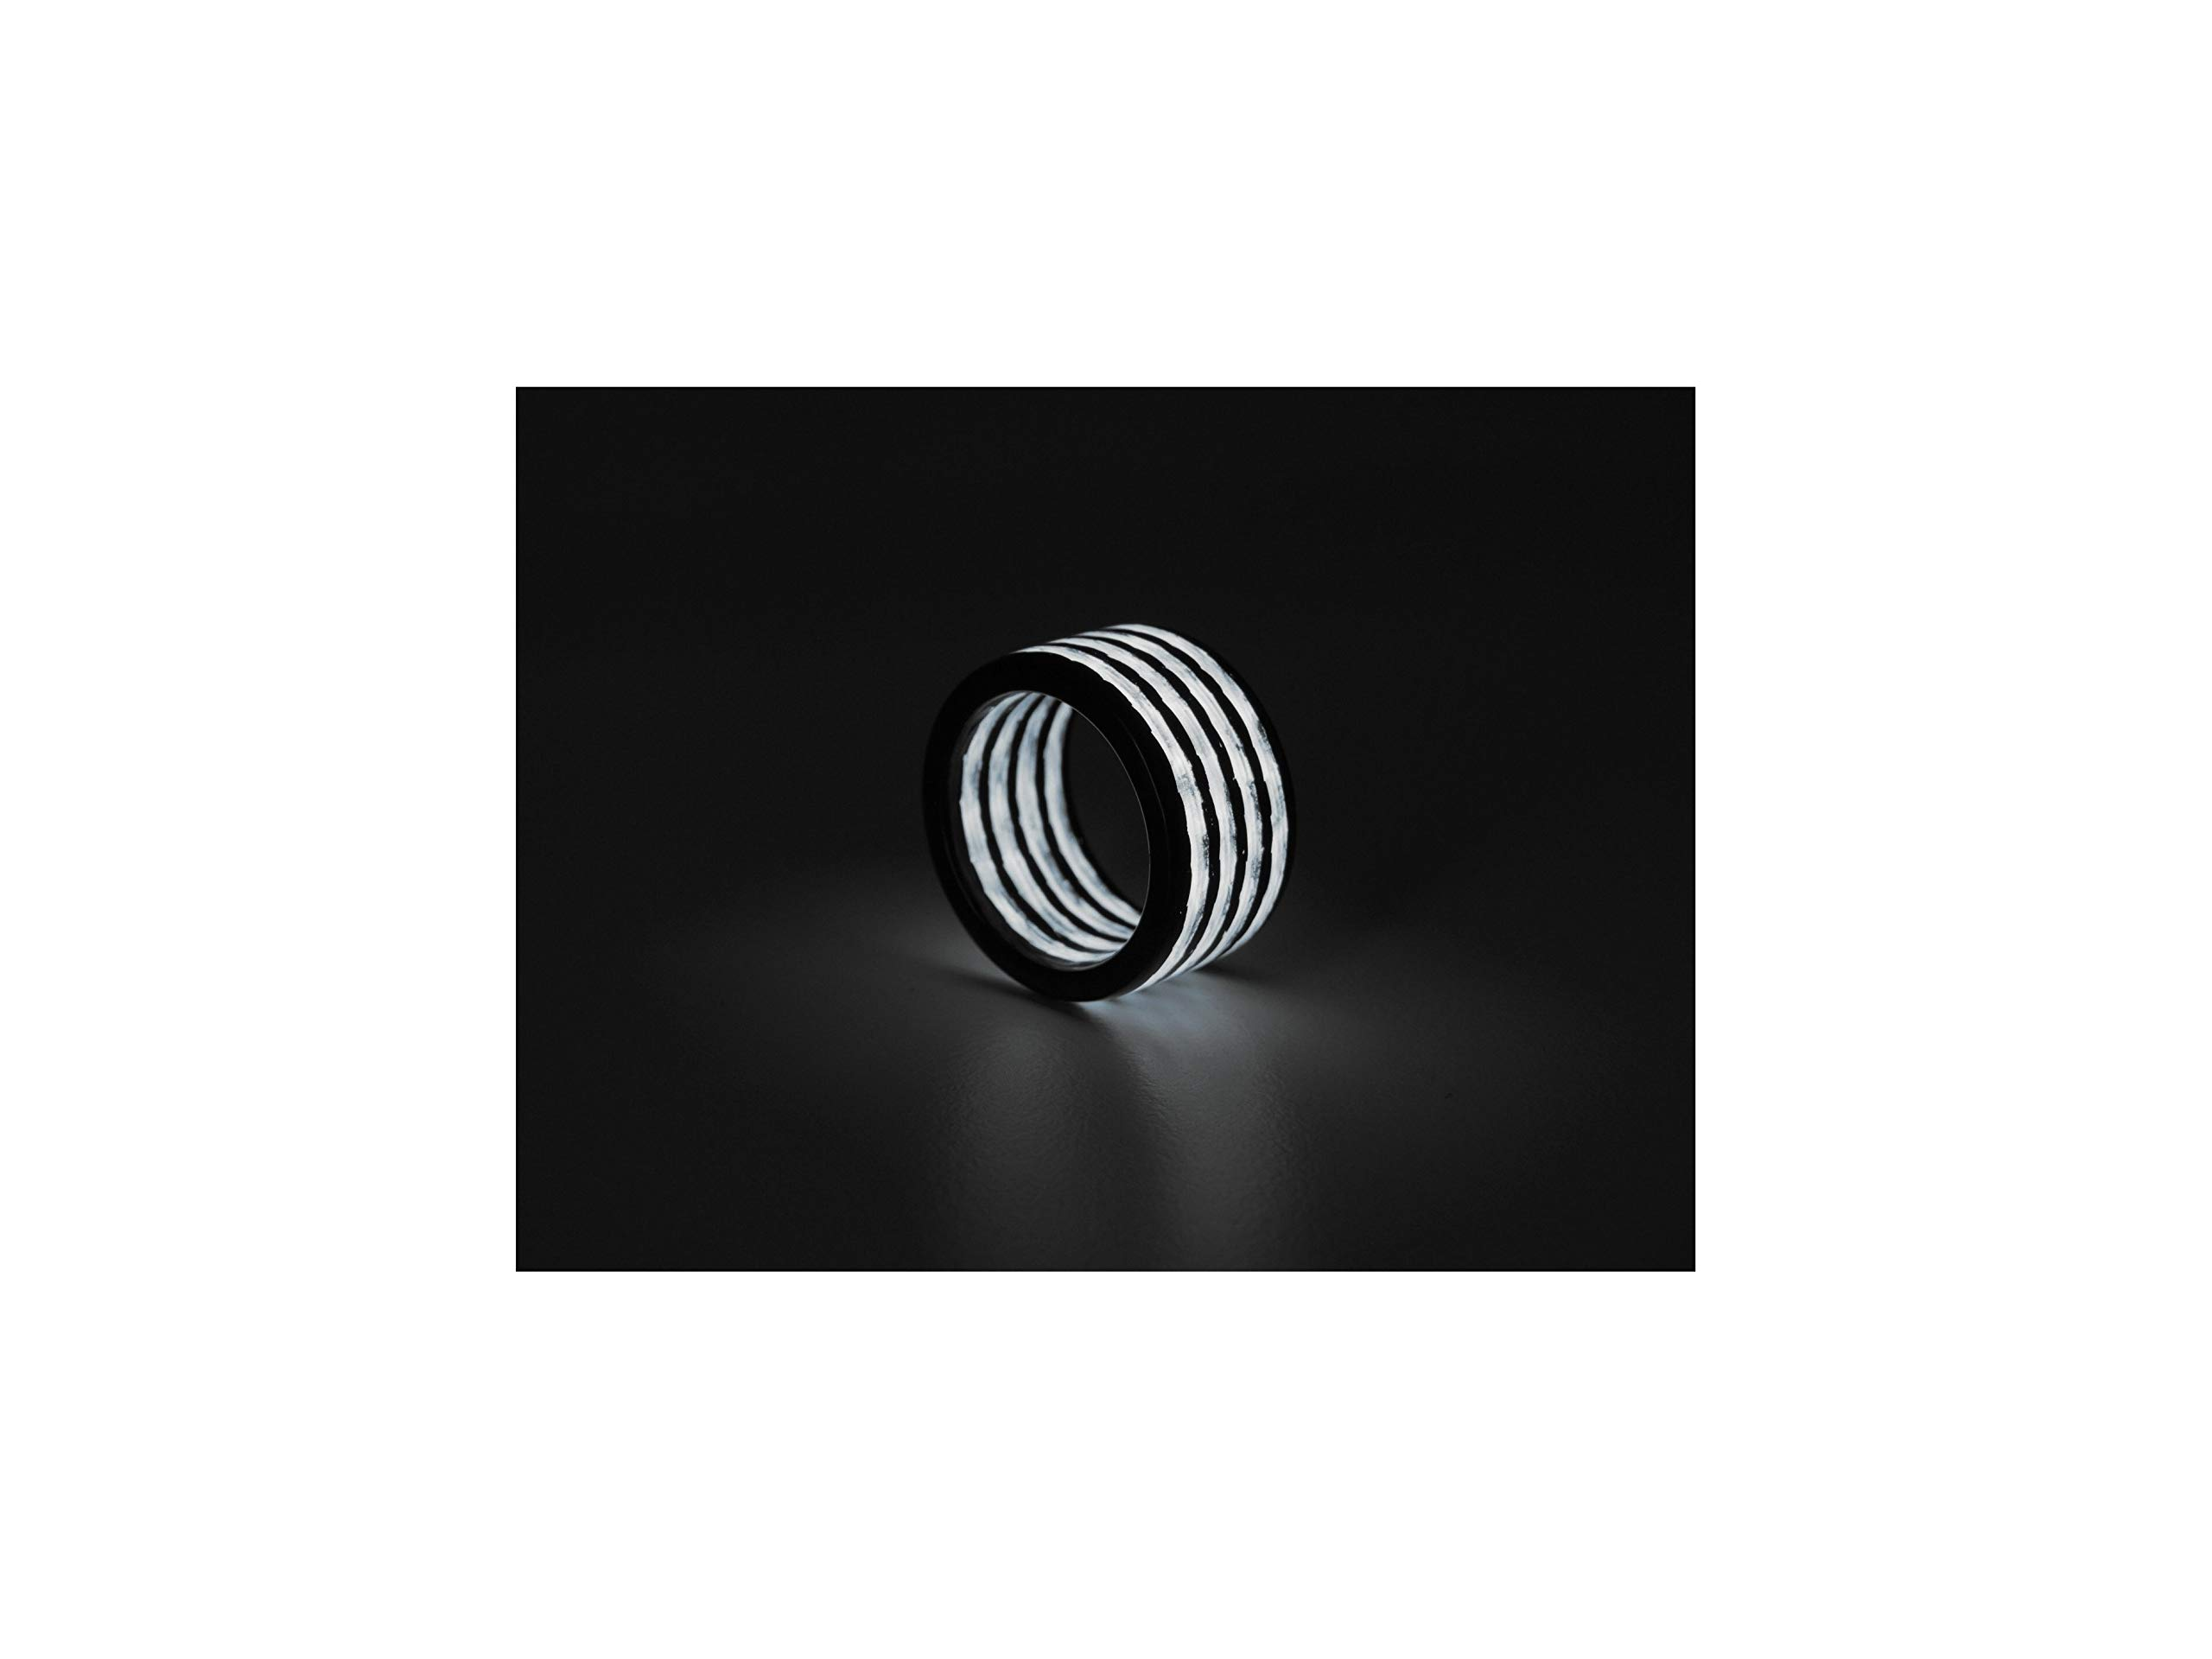 Rune Refinery CarbonFi: As Seen on Kickstarter Glow in The Dark Carbon Fiber Ring for Men & Women, Perfect Wedding Bands, Birthday Gifts & Engagement Band, White, 1/2'' Wide, Size 10.5